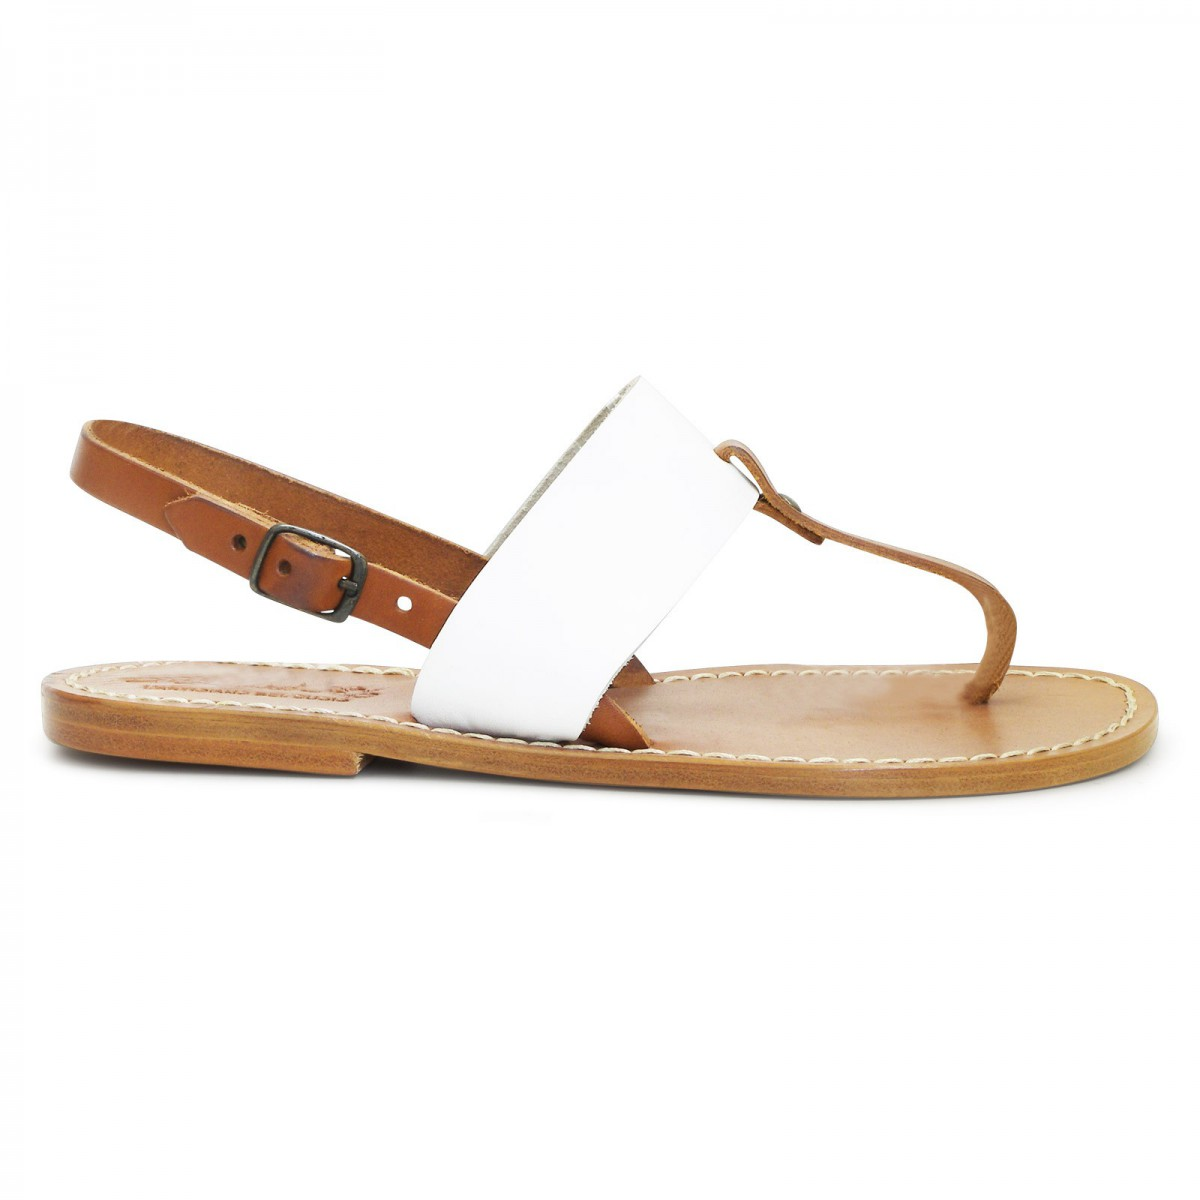 f0f50f6c1 ... Thong sandals for women Two tone tan and white leather ...